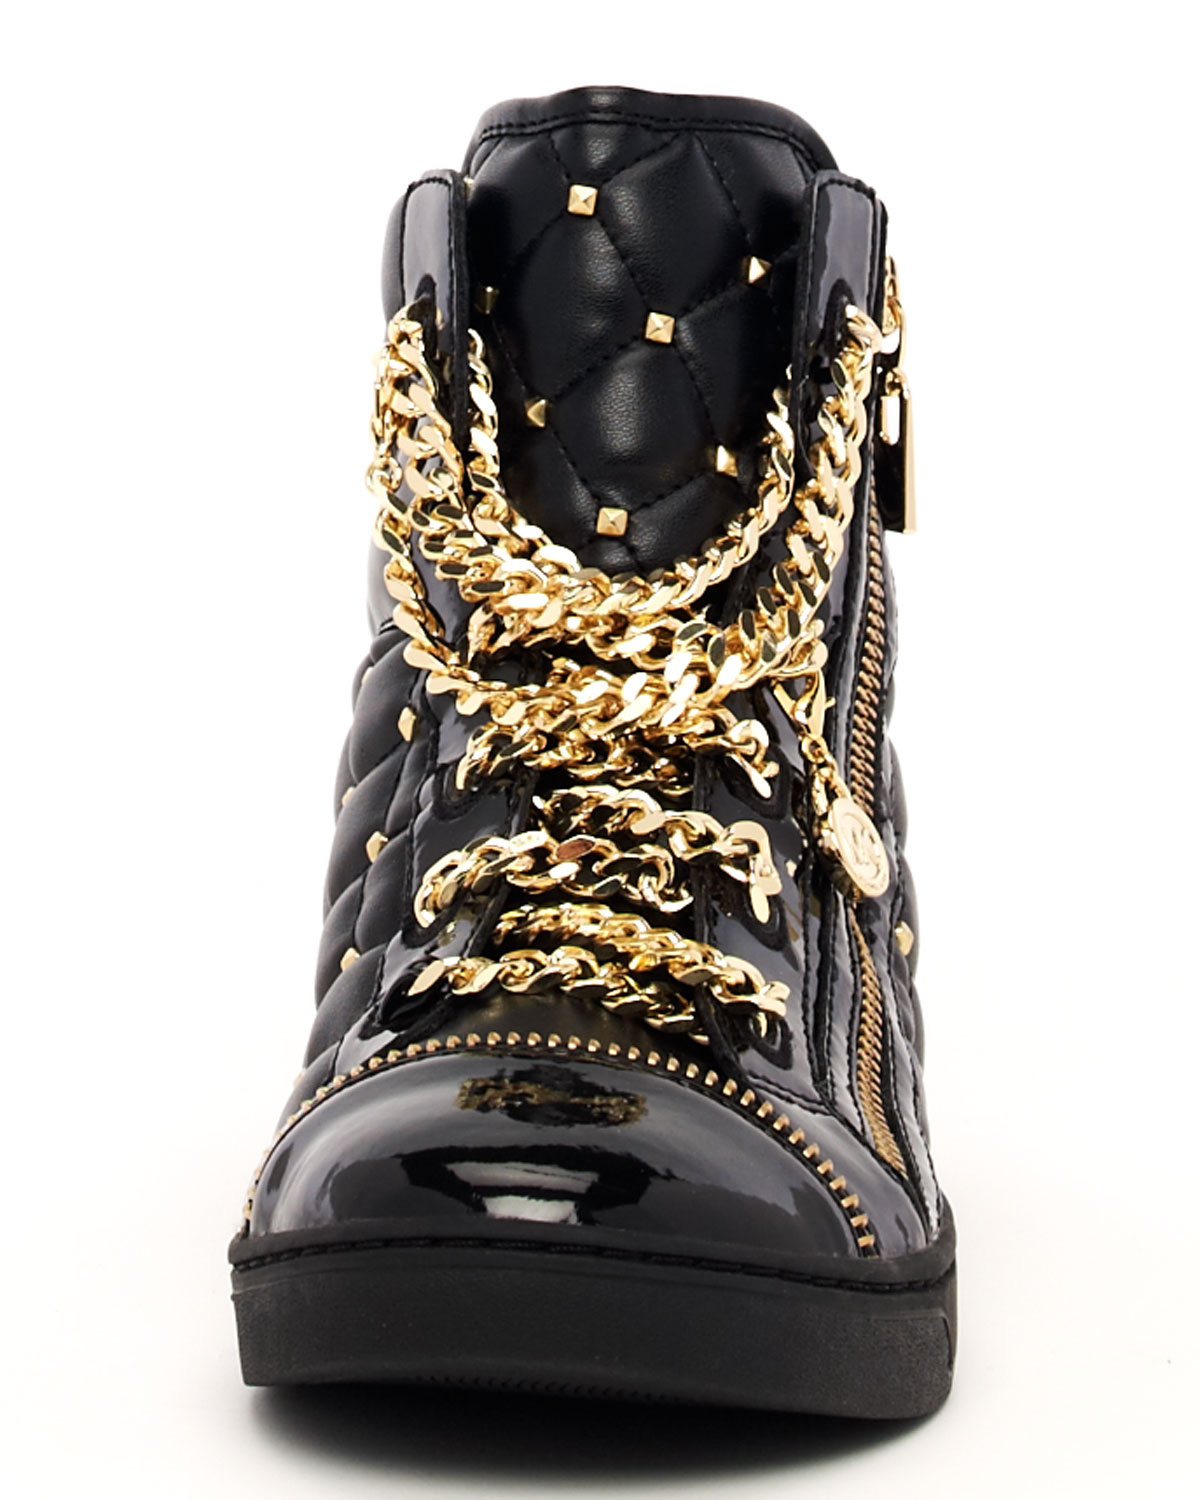 Lyst Michael Kors Chainlace Quilted Hightop In Metallic